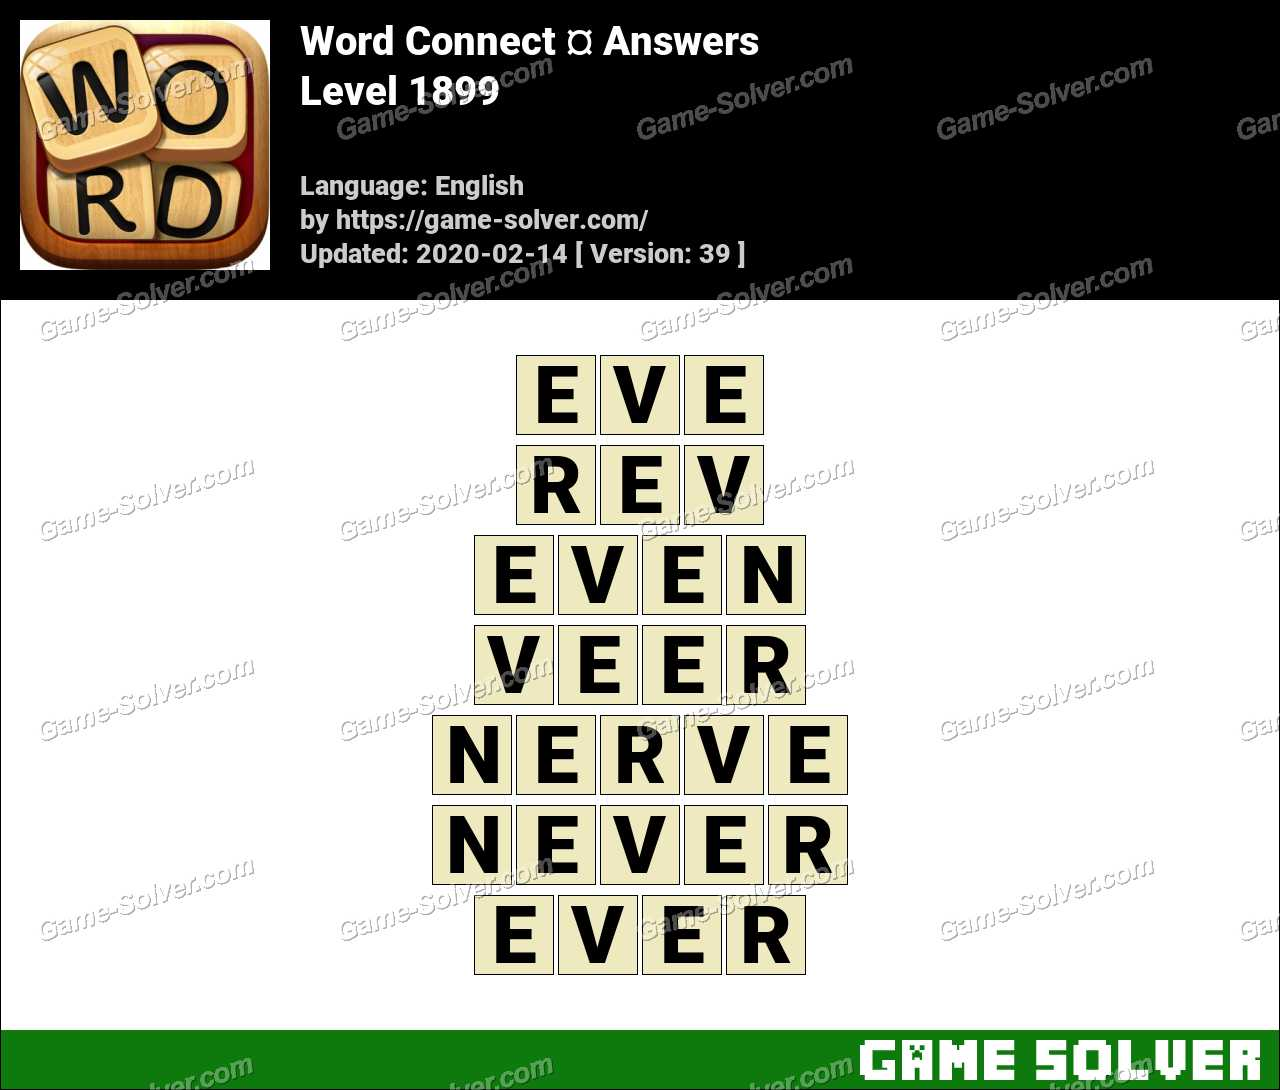 Word Connect Level 1899 Answers